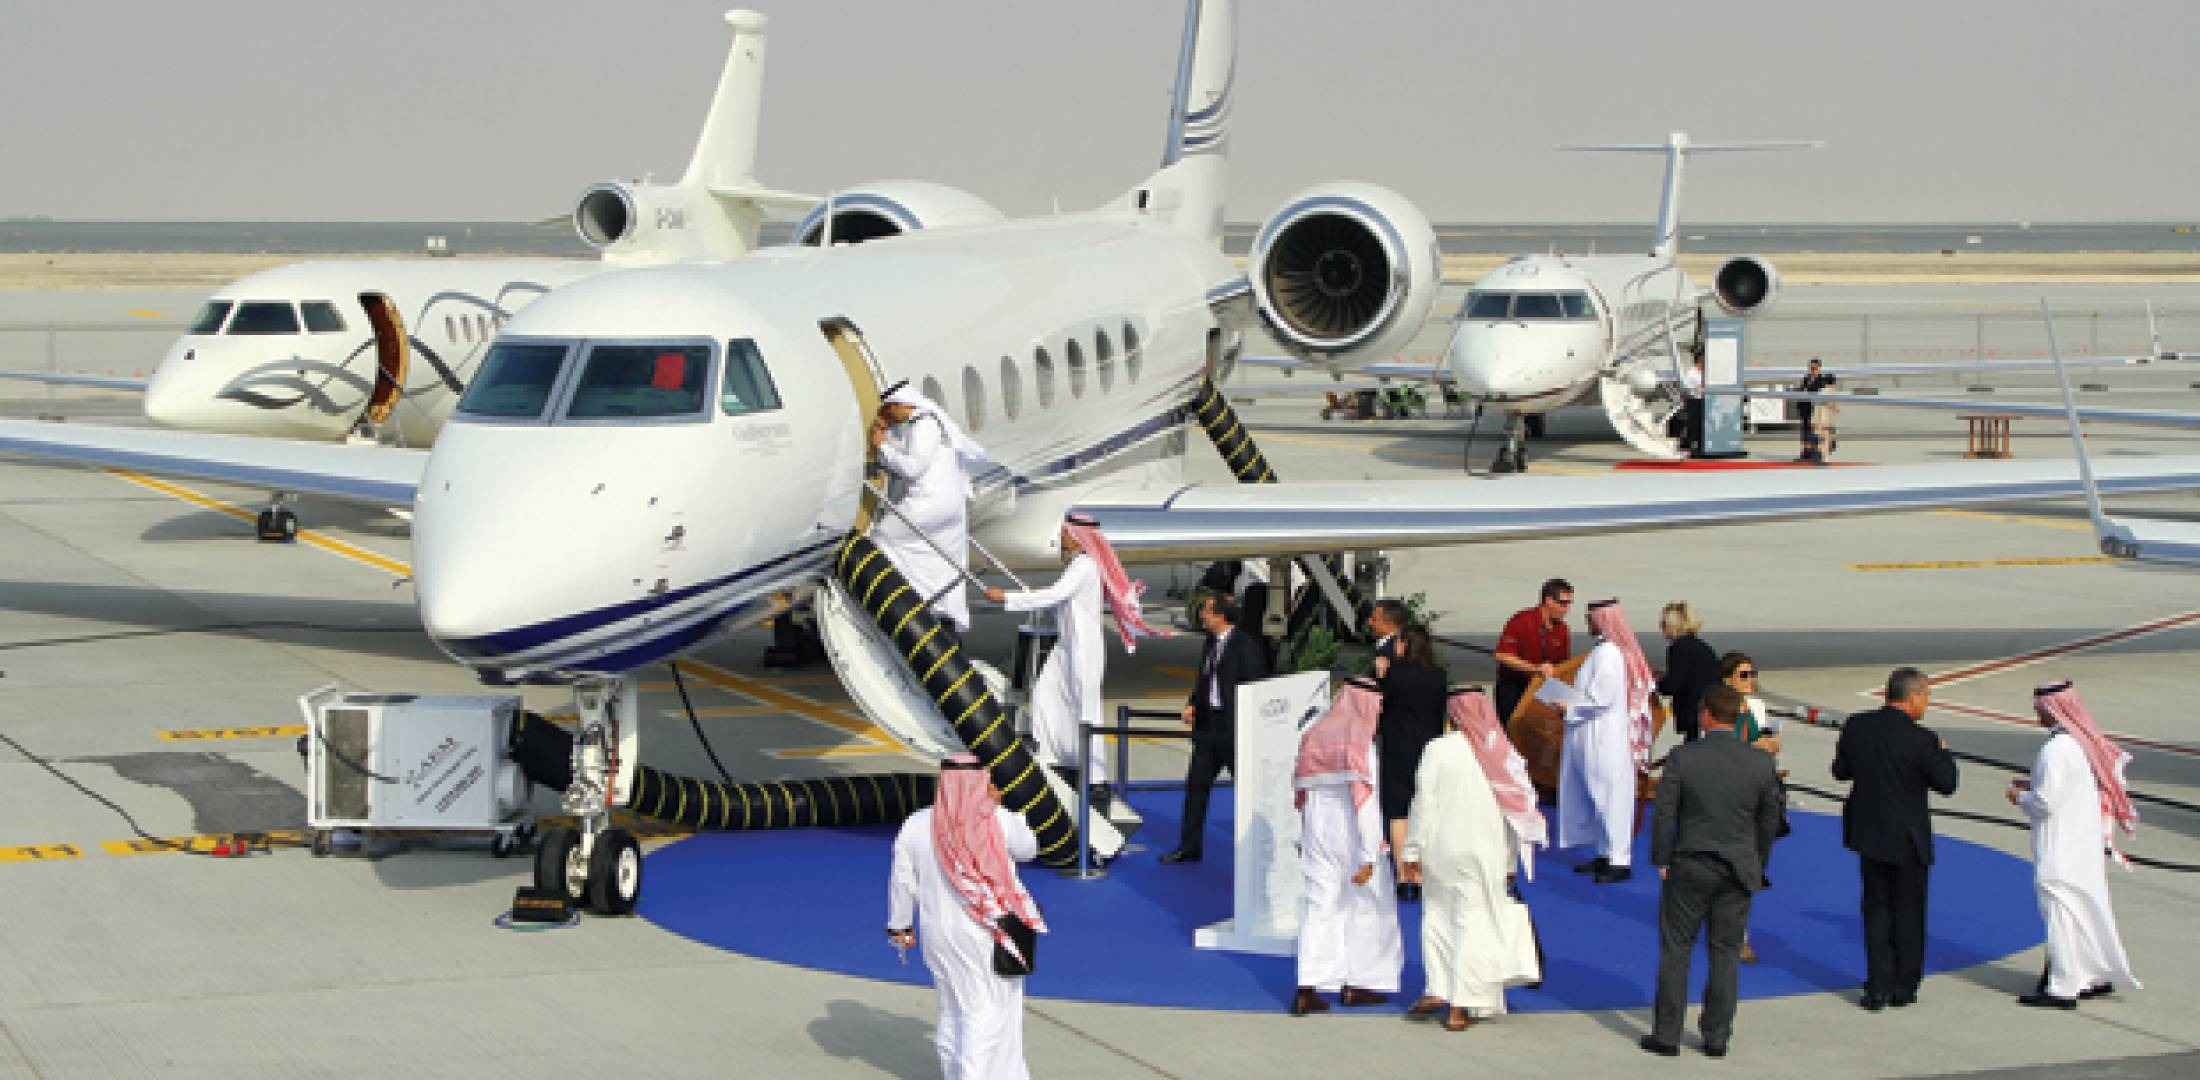 This year's Middle East Business Aviation show drew 20 percent more exhibitors than the 2010 event, with 385 companies from 84 countries attending. There were 34 aircraft on the static display line at the new Dubai World Central site, which has set its sights on being a business aviation hub by the time the show returns in 2014.